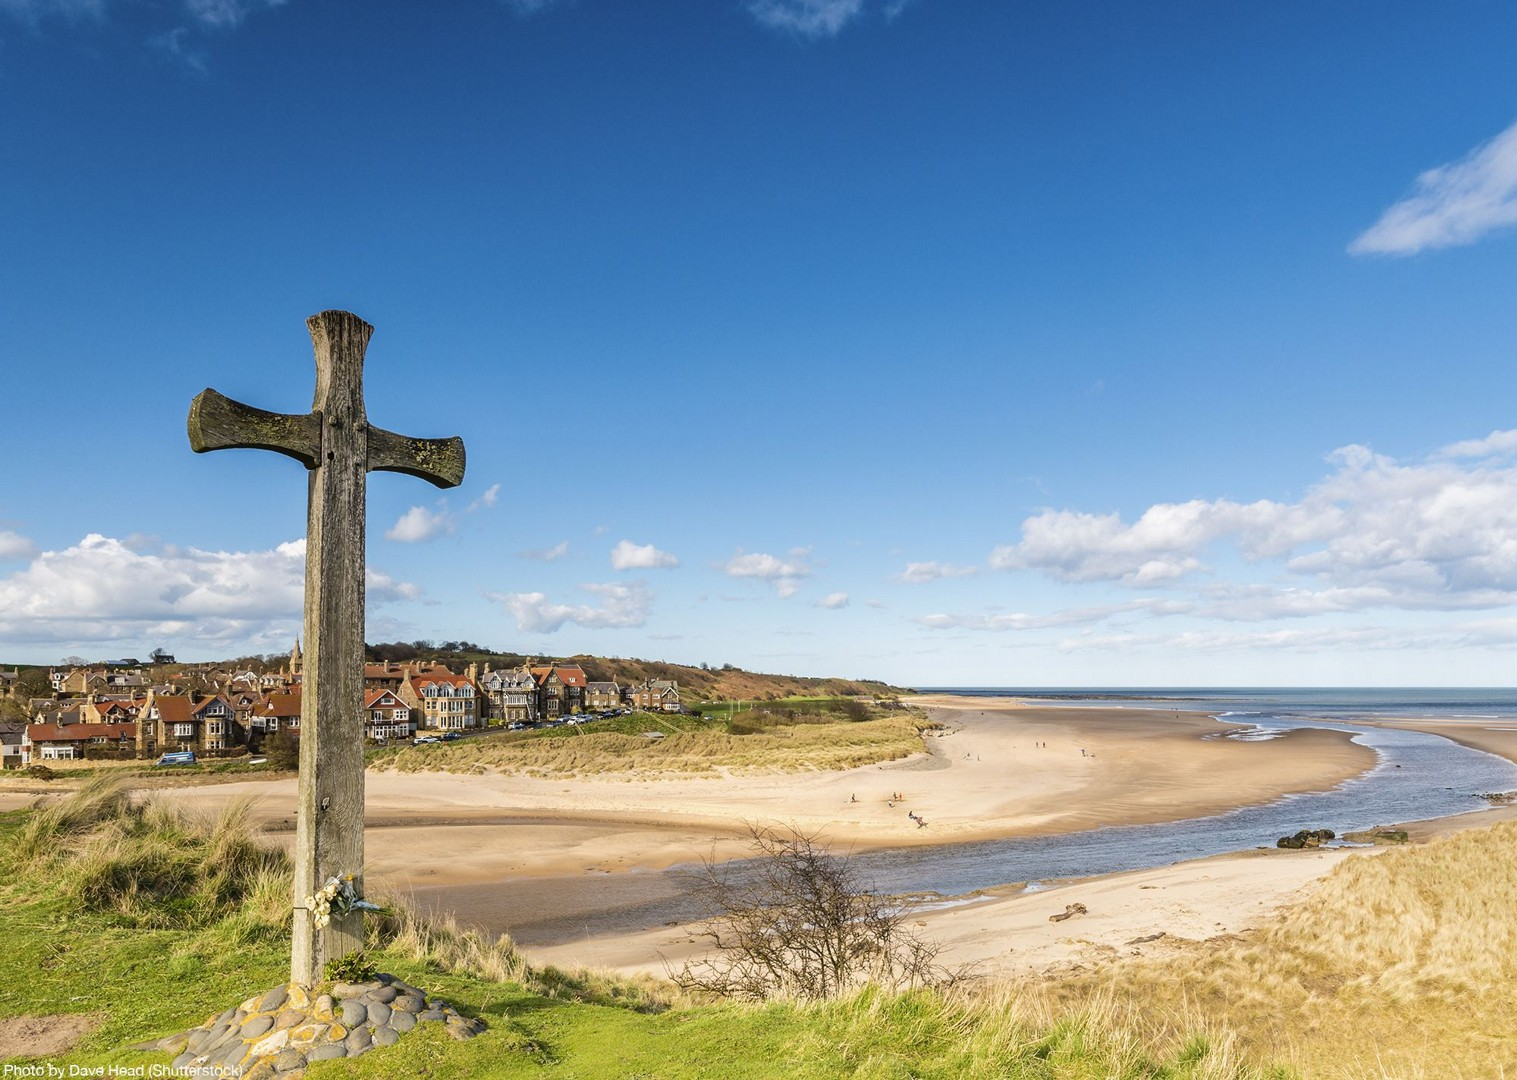 warkworth-beaches-cycling-holiday-bike-tour-self-guided-leisure-uk-england.jpg - UK - Northumberland Coast - 2 Days - Self-Guided Leisure Cycling Holiday - Leisure Cycling